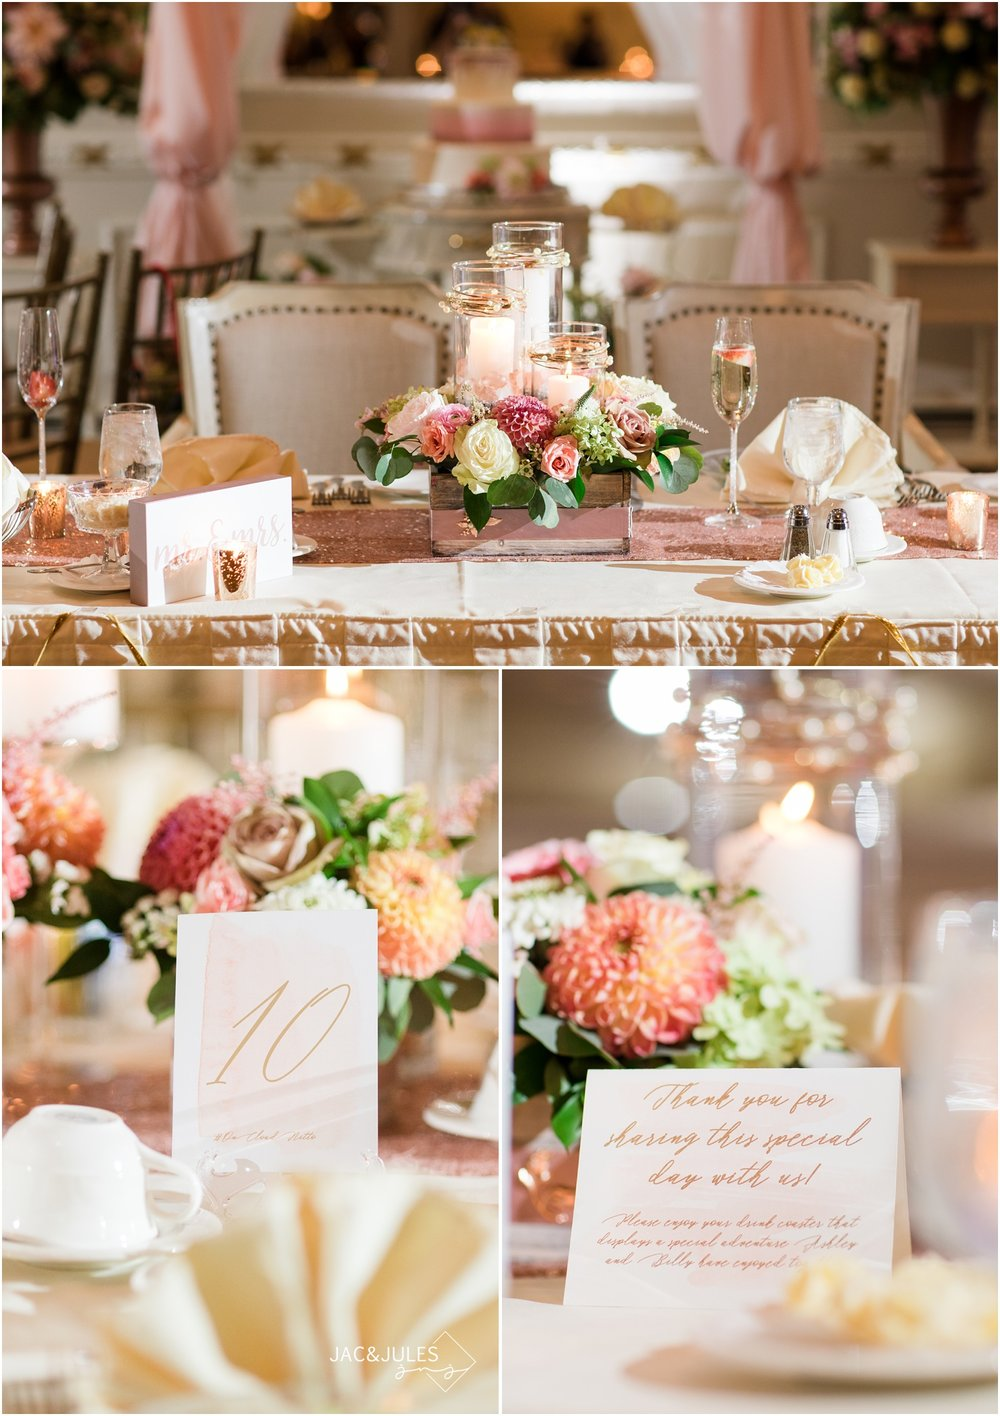 Reception room decor and florals by wildflowers with tami at The Breakers in Spring Lake.